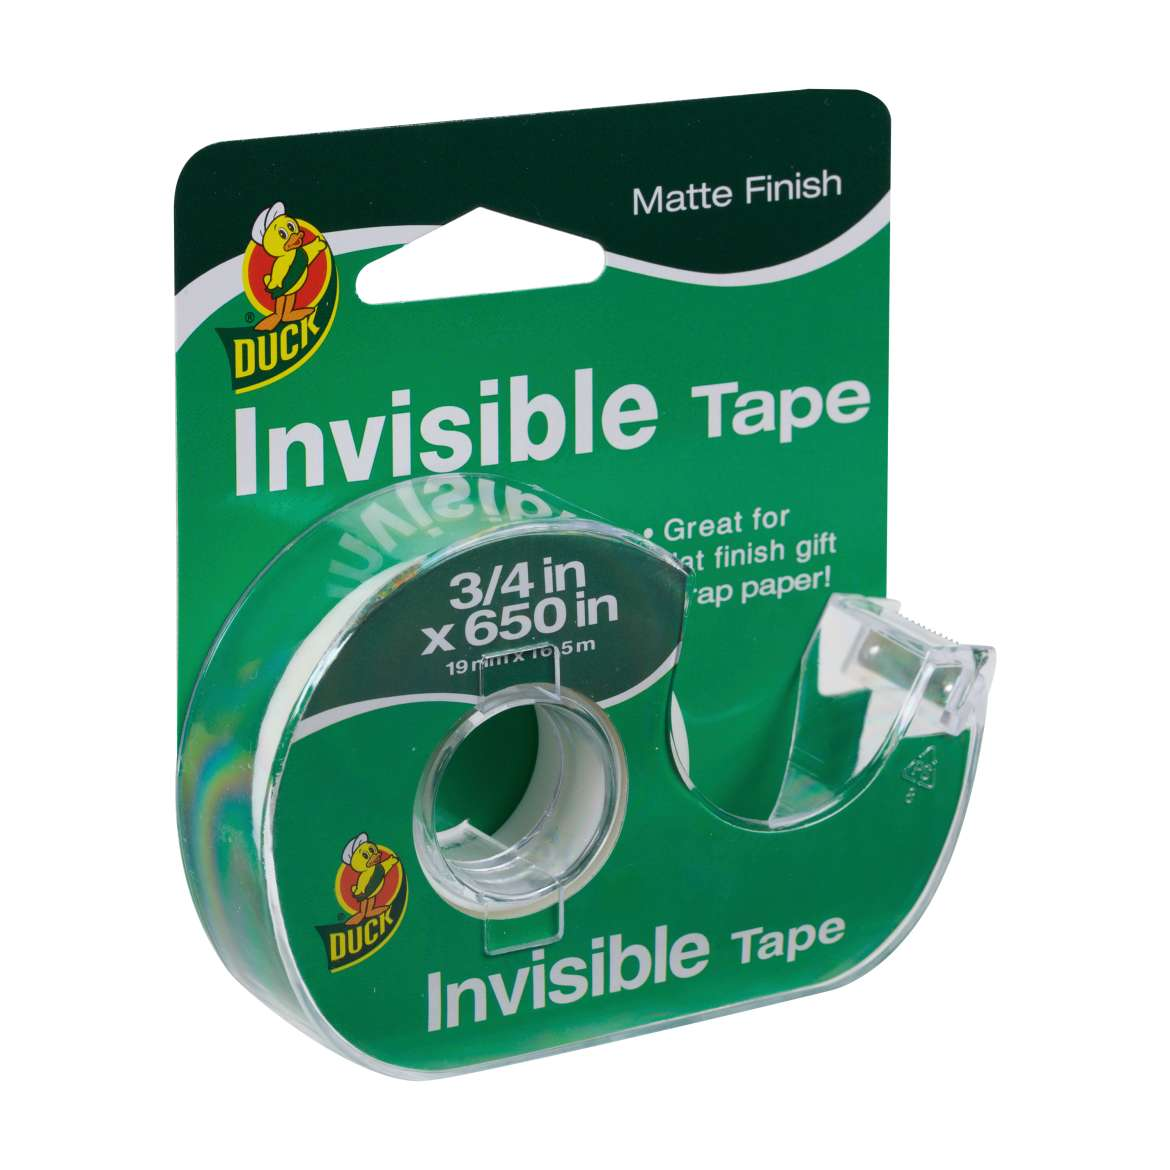 Matte Finish Invisible Tape Image